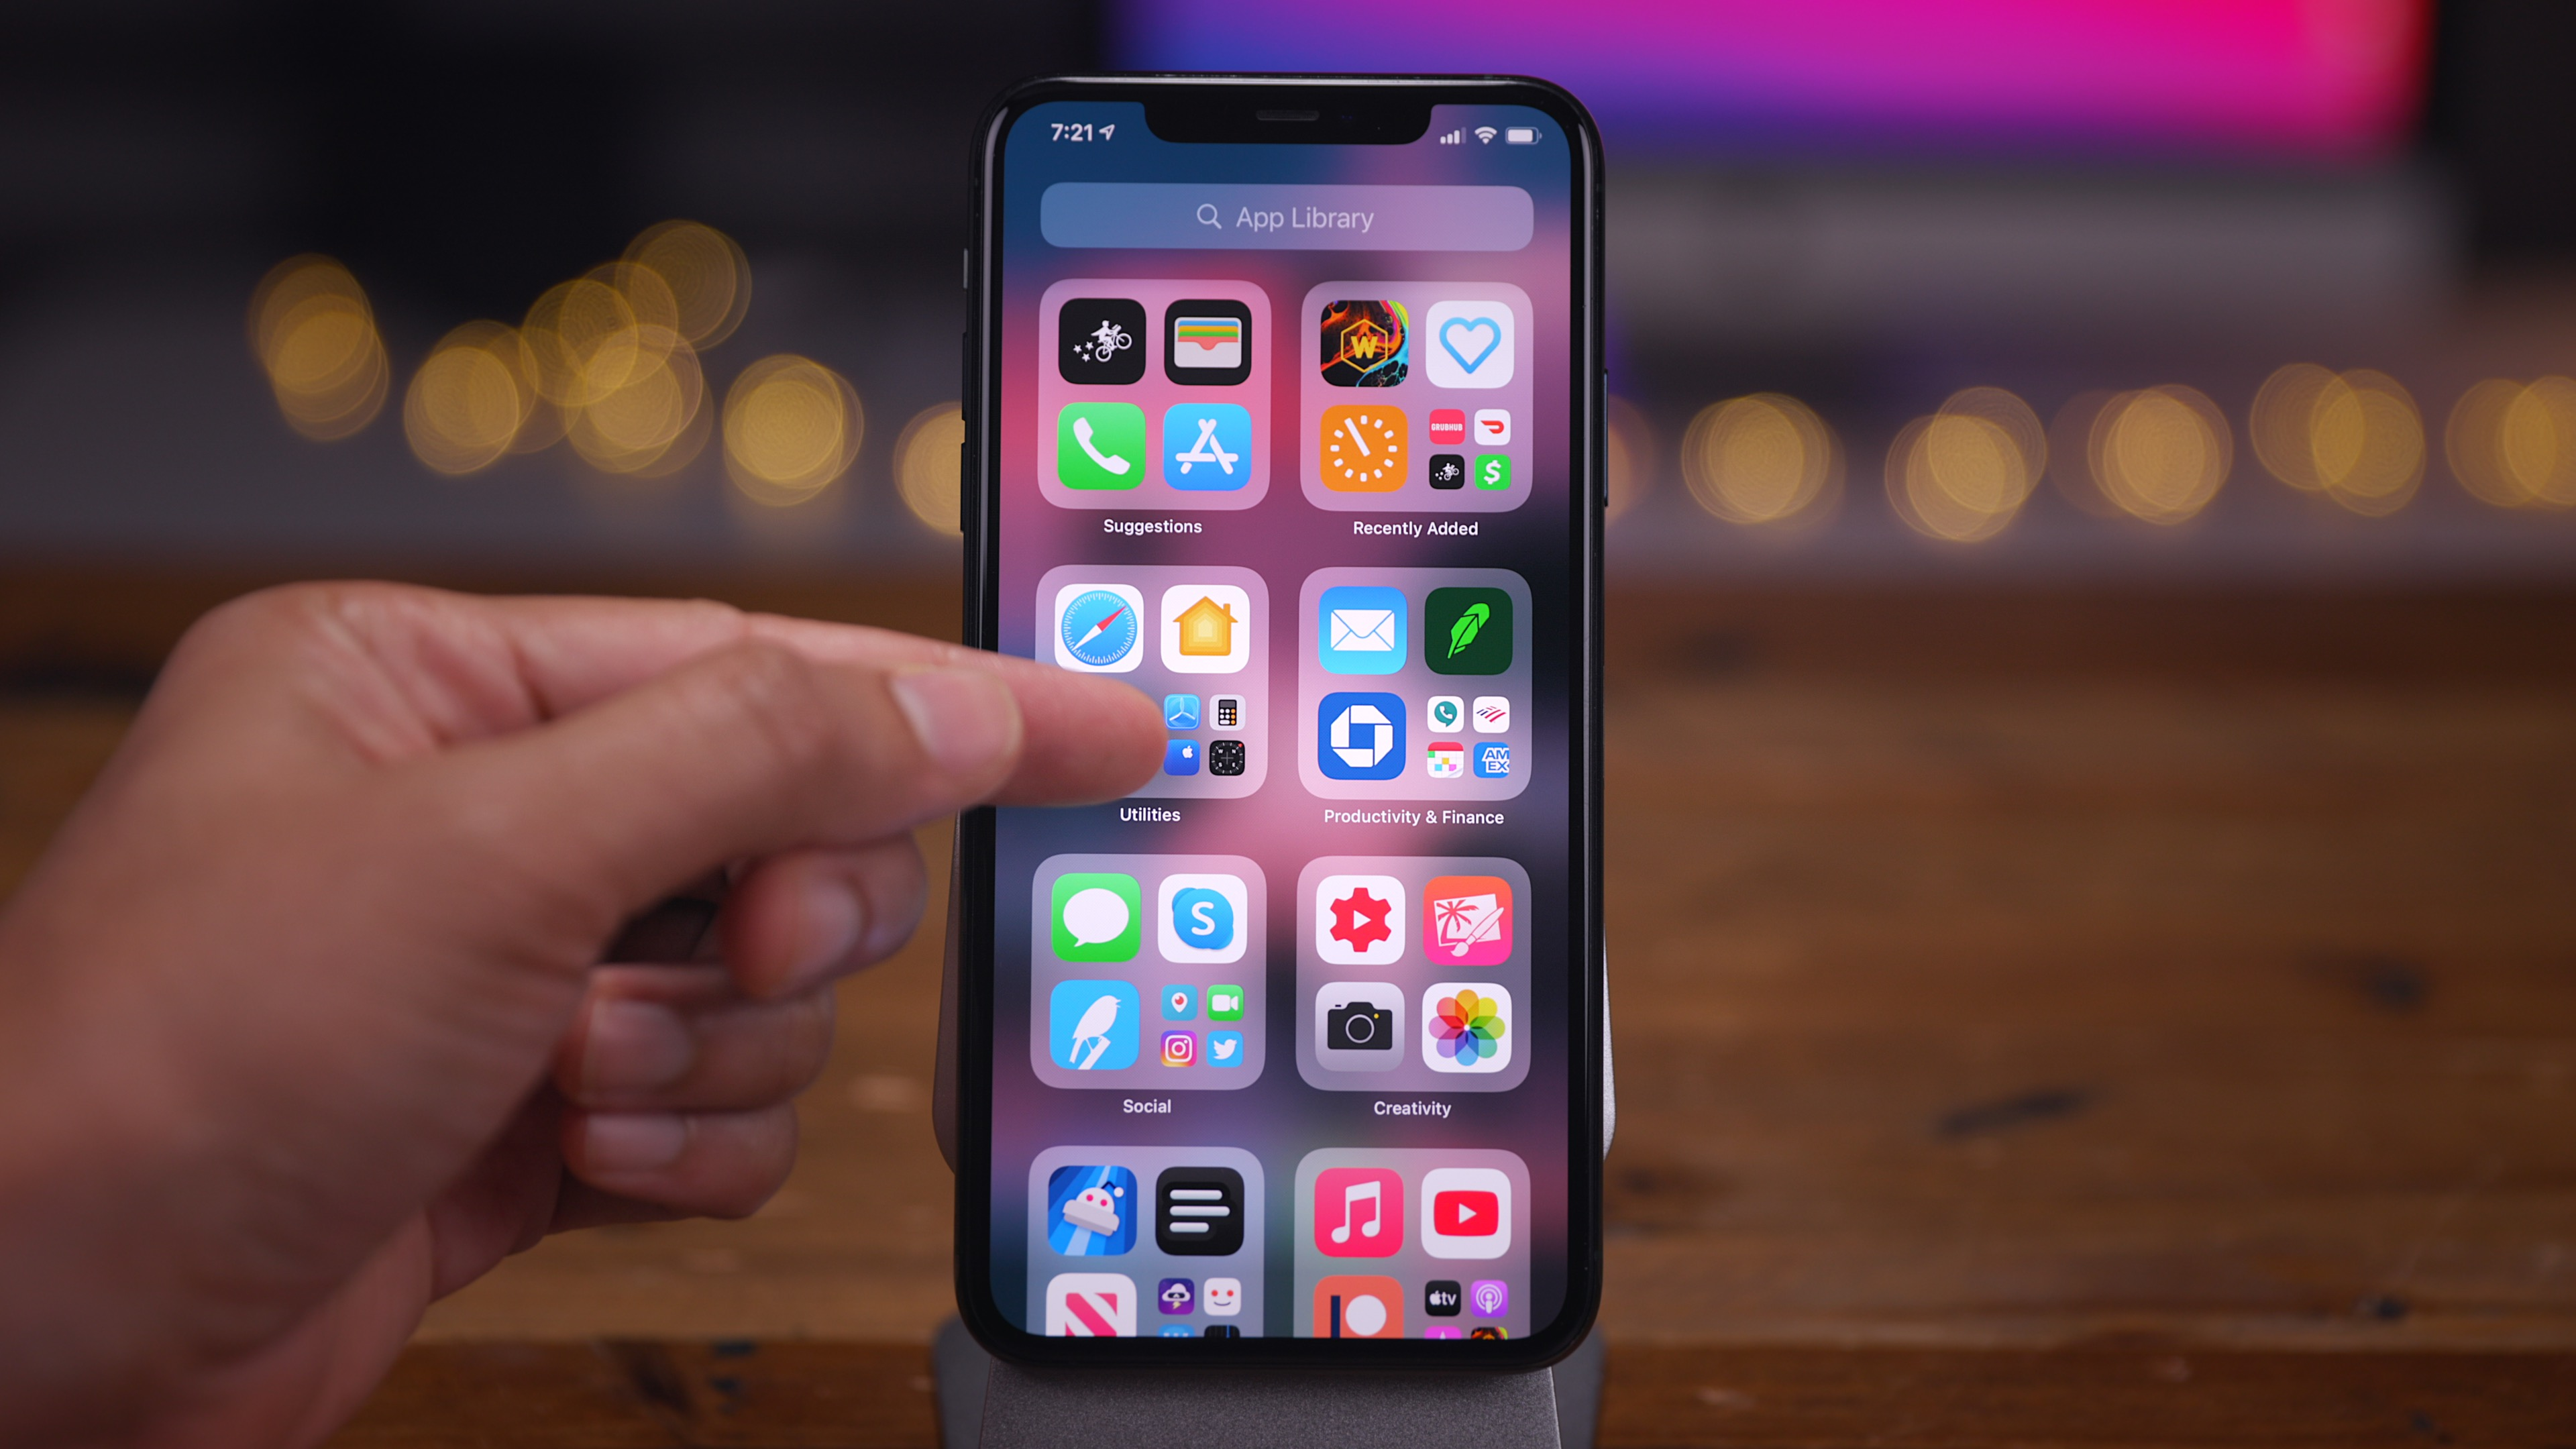 Ios 14 home screen tips and tricks how to view the app library